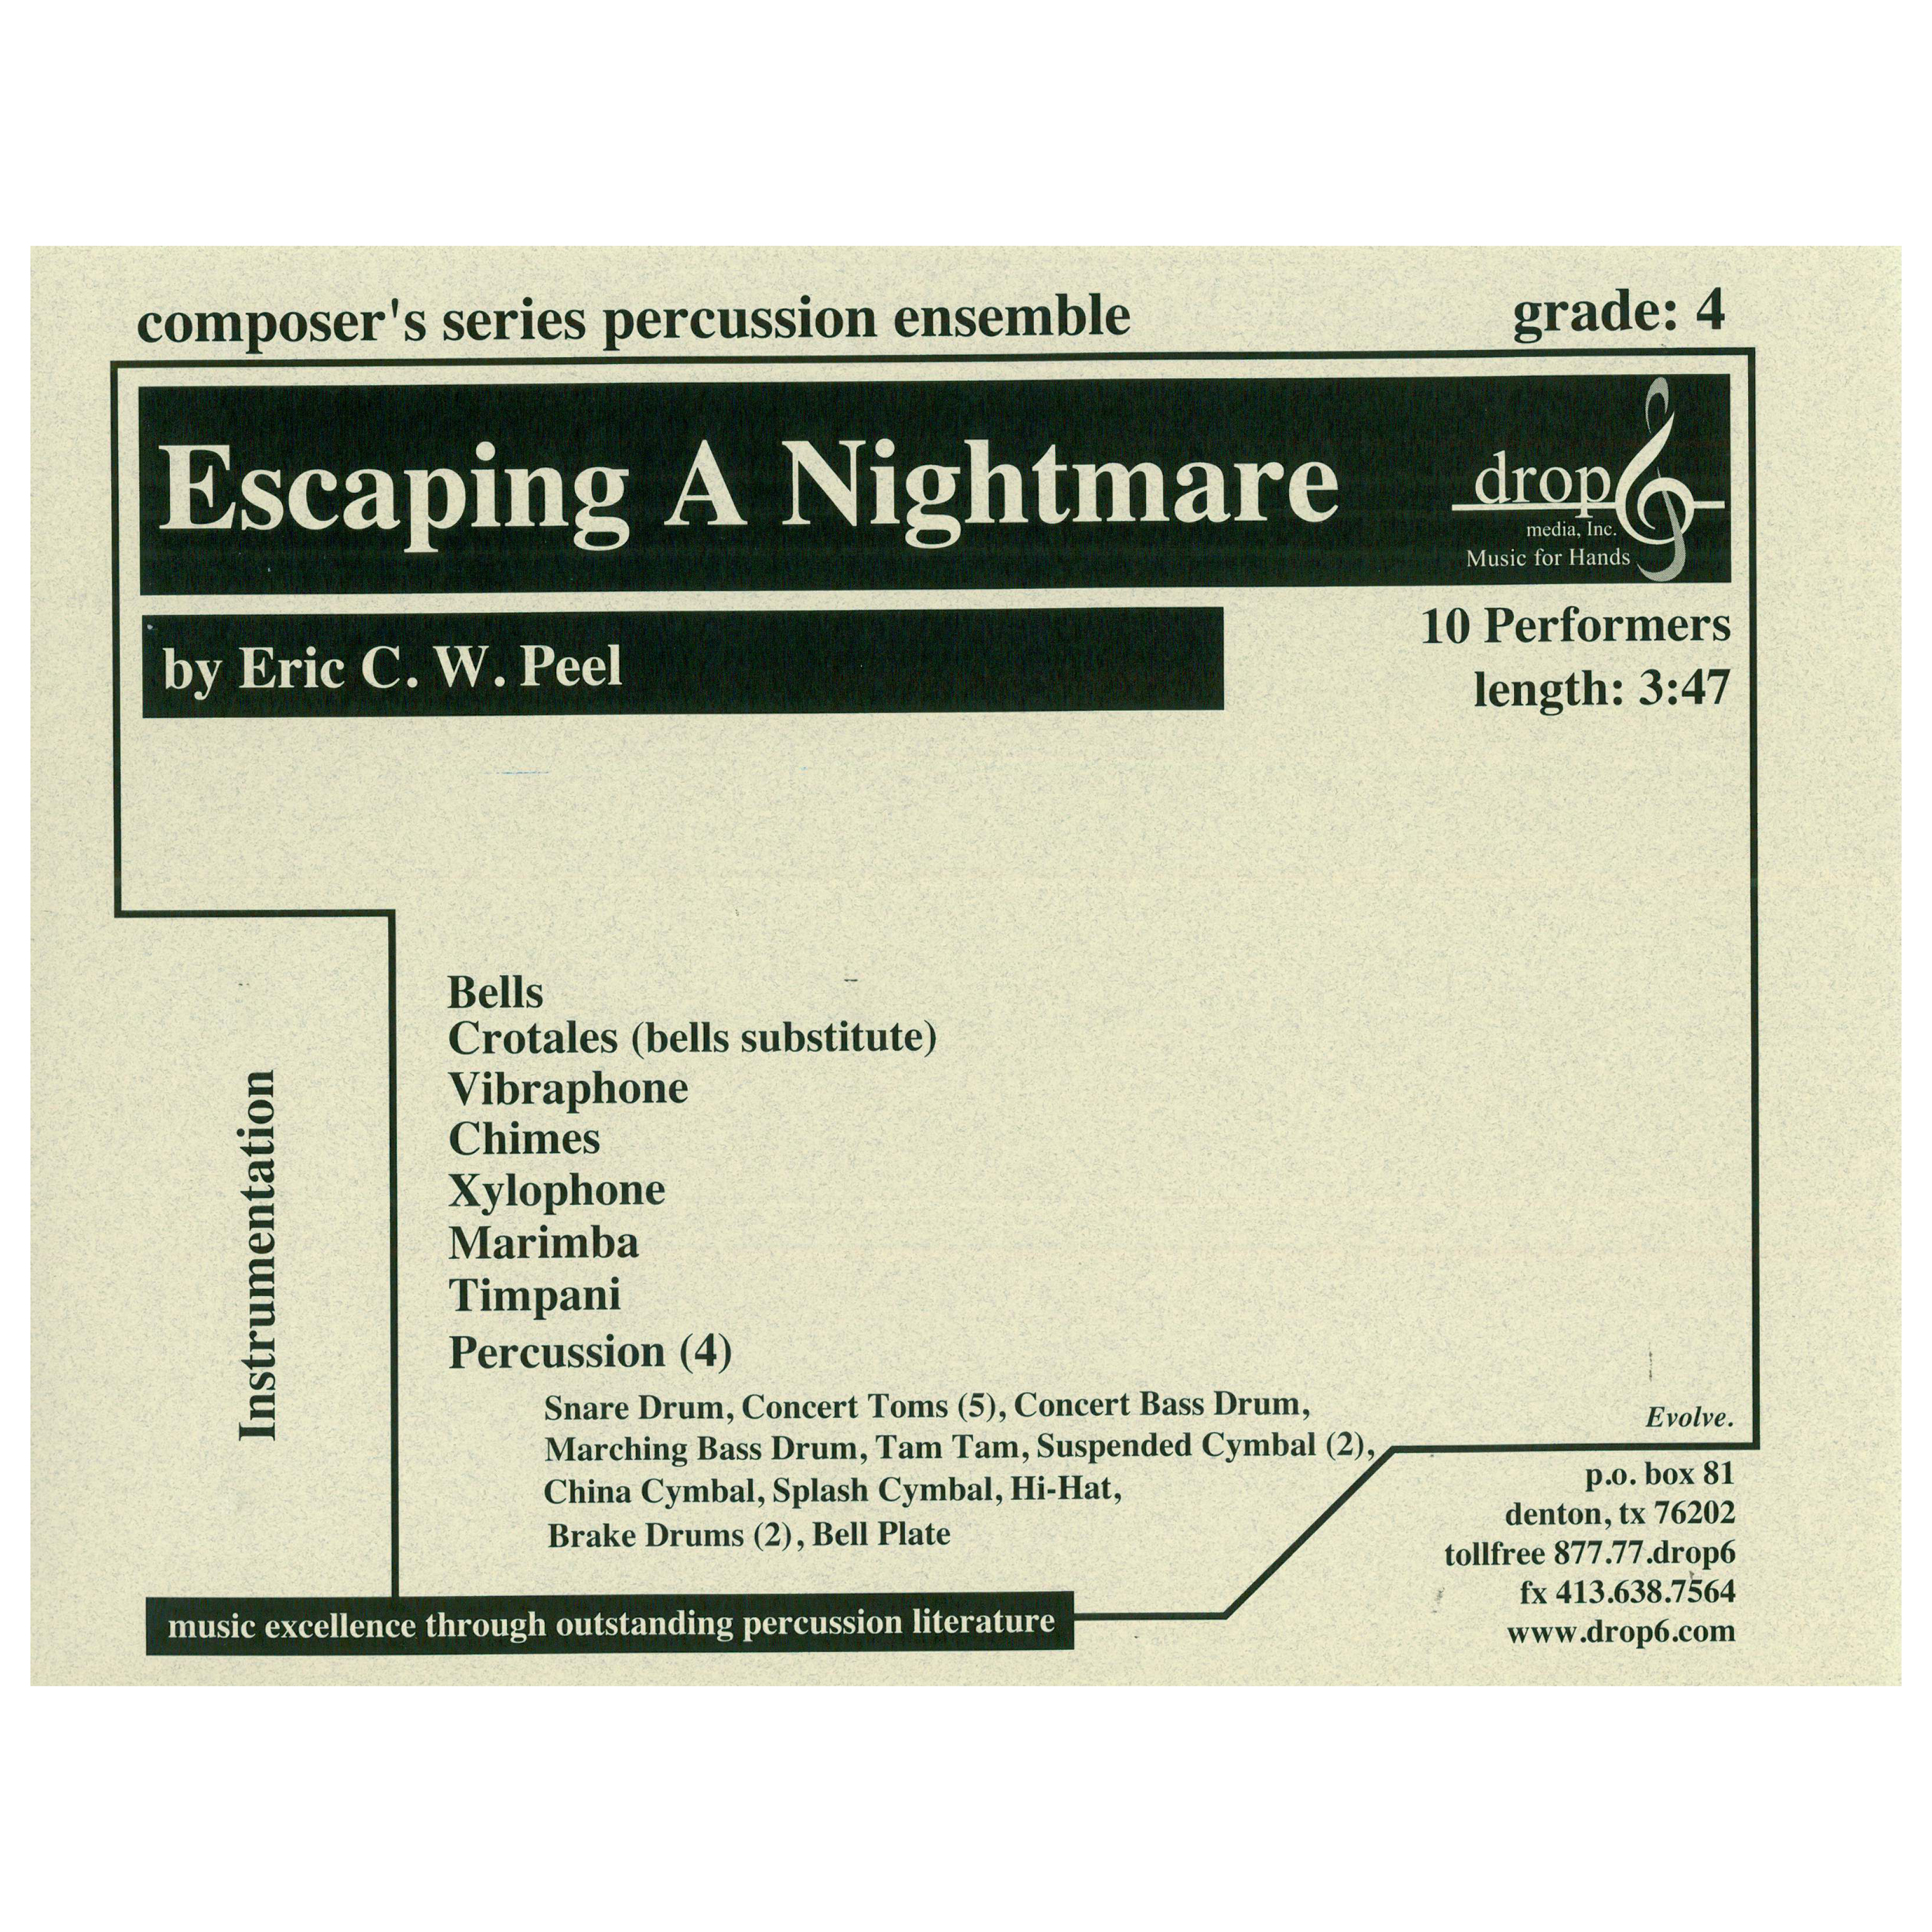 Escaping a Nightmare by Eric Peel